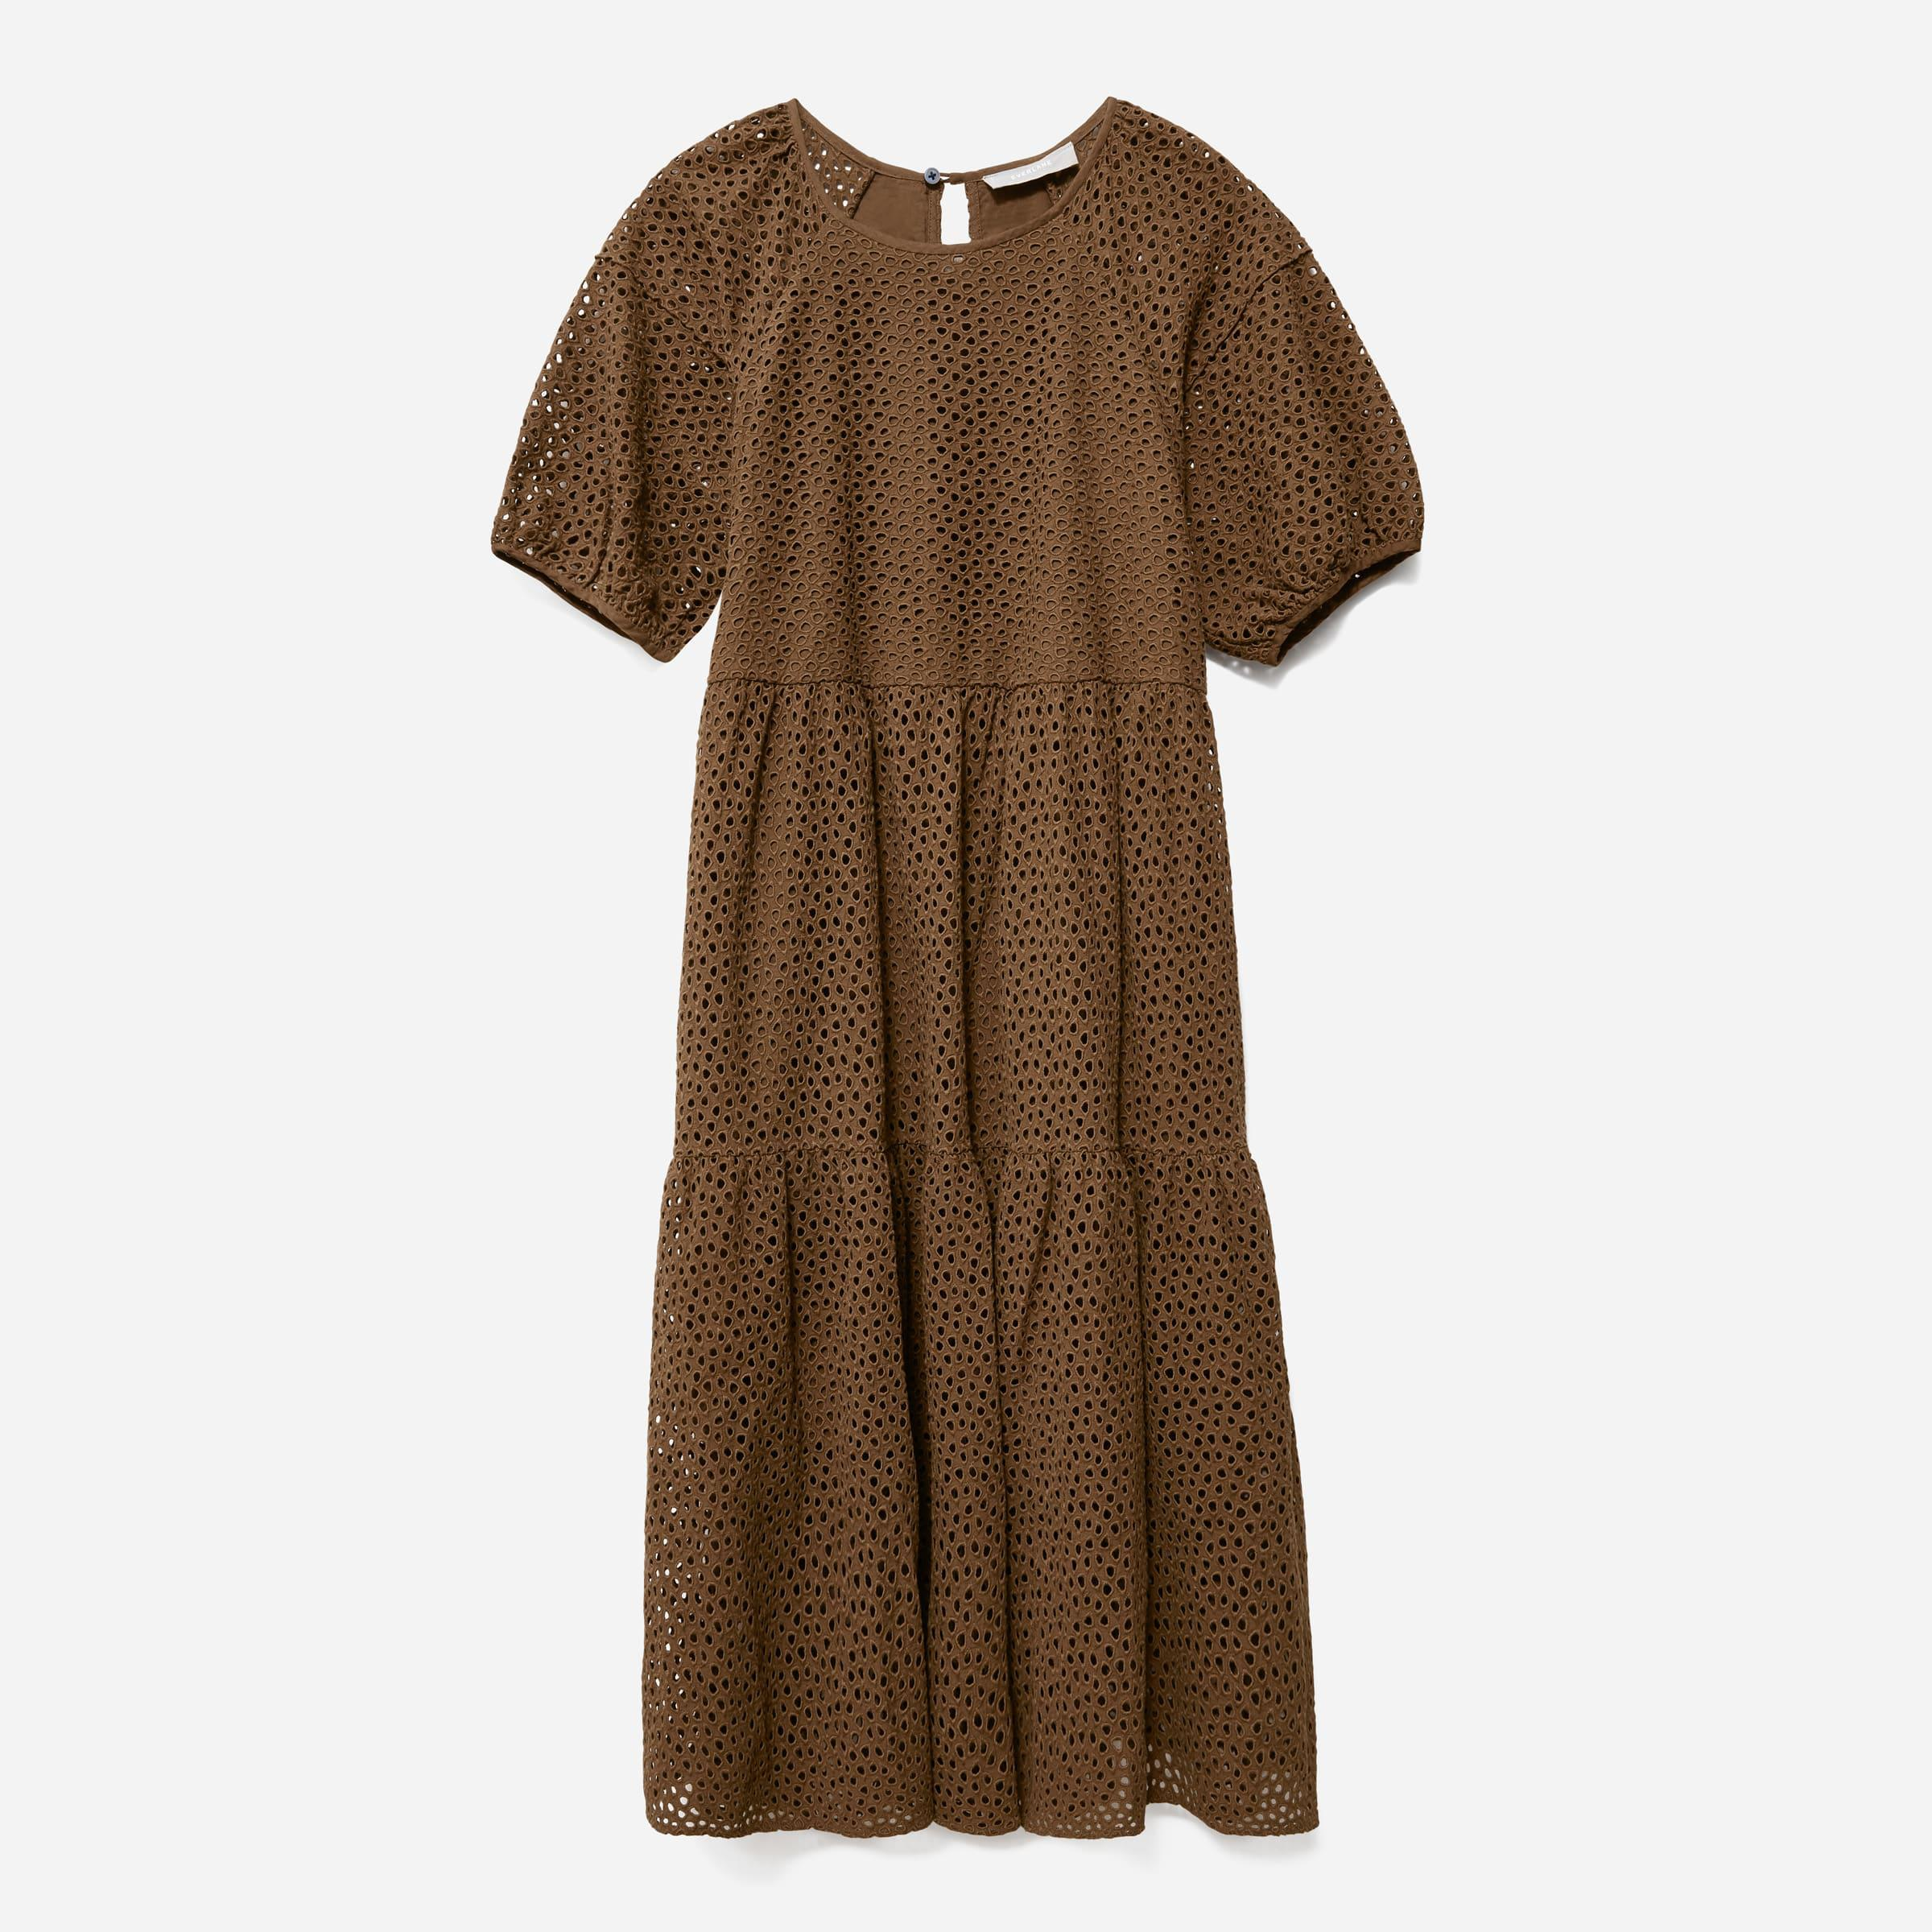 The Tiered Eyelet Dress 4